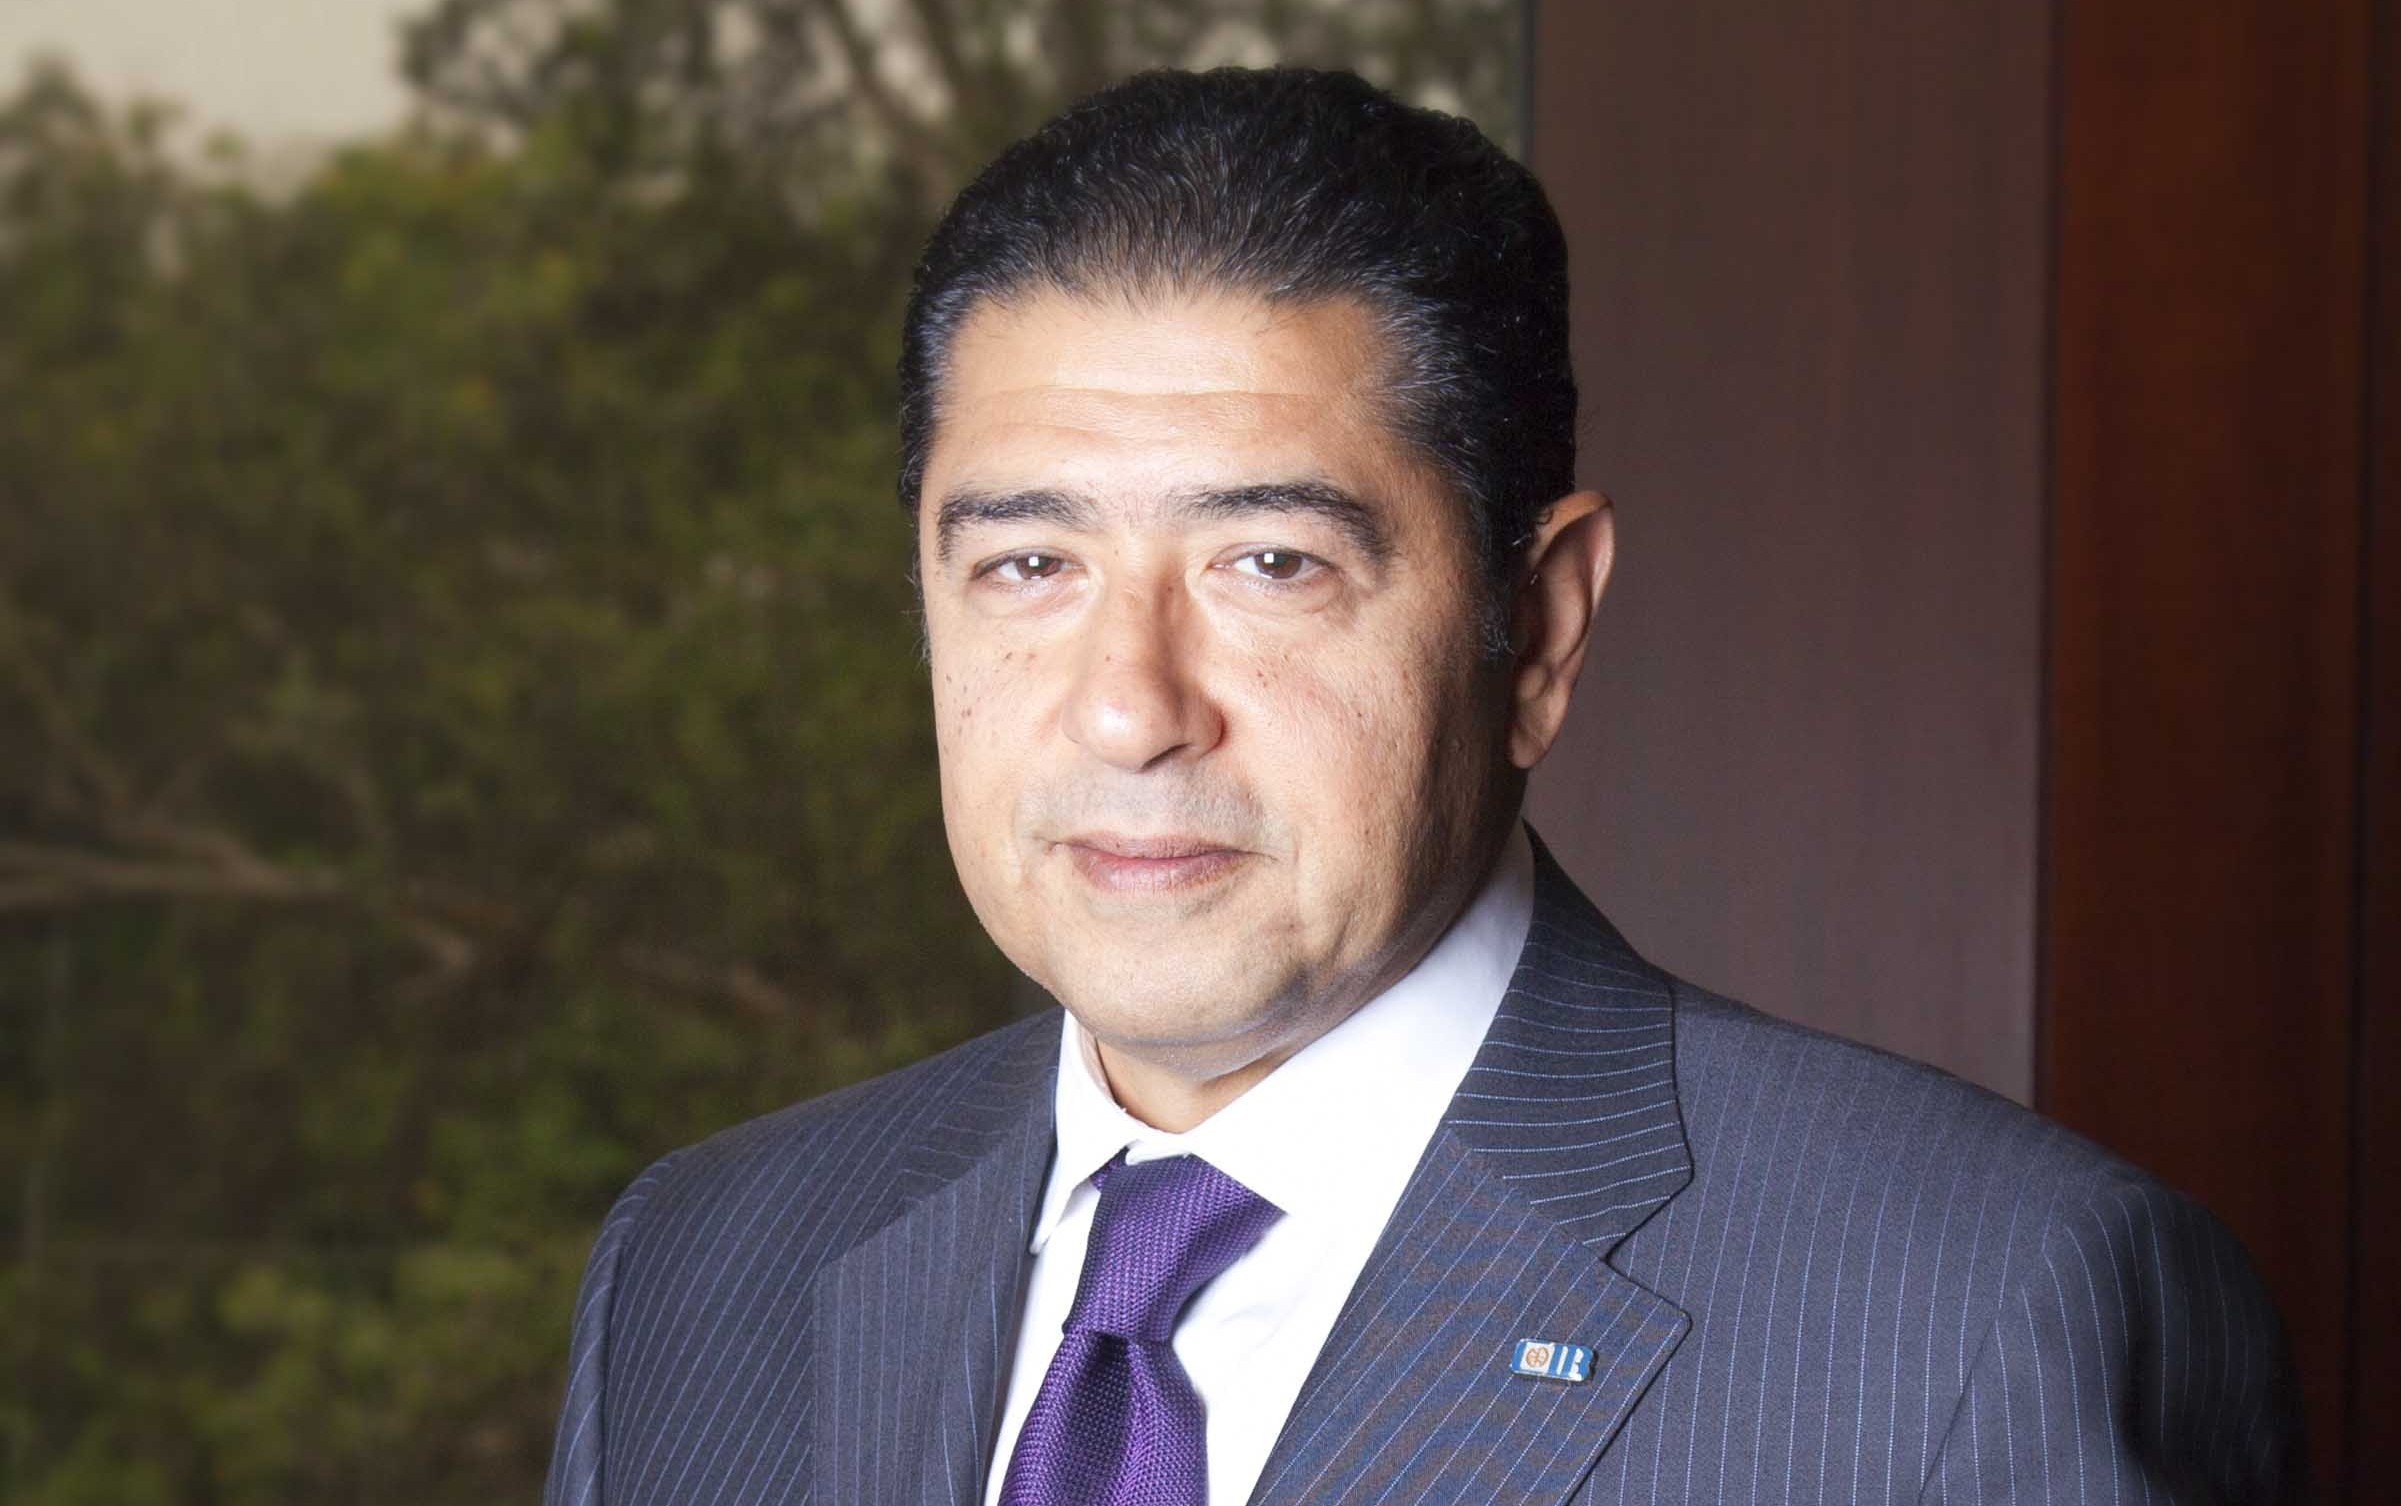 Hisham Ezz Al Arab, chairperson of CIB